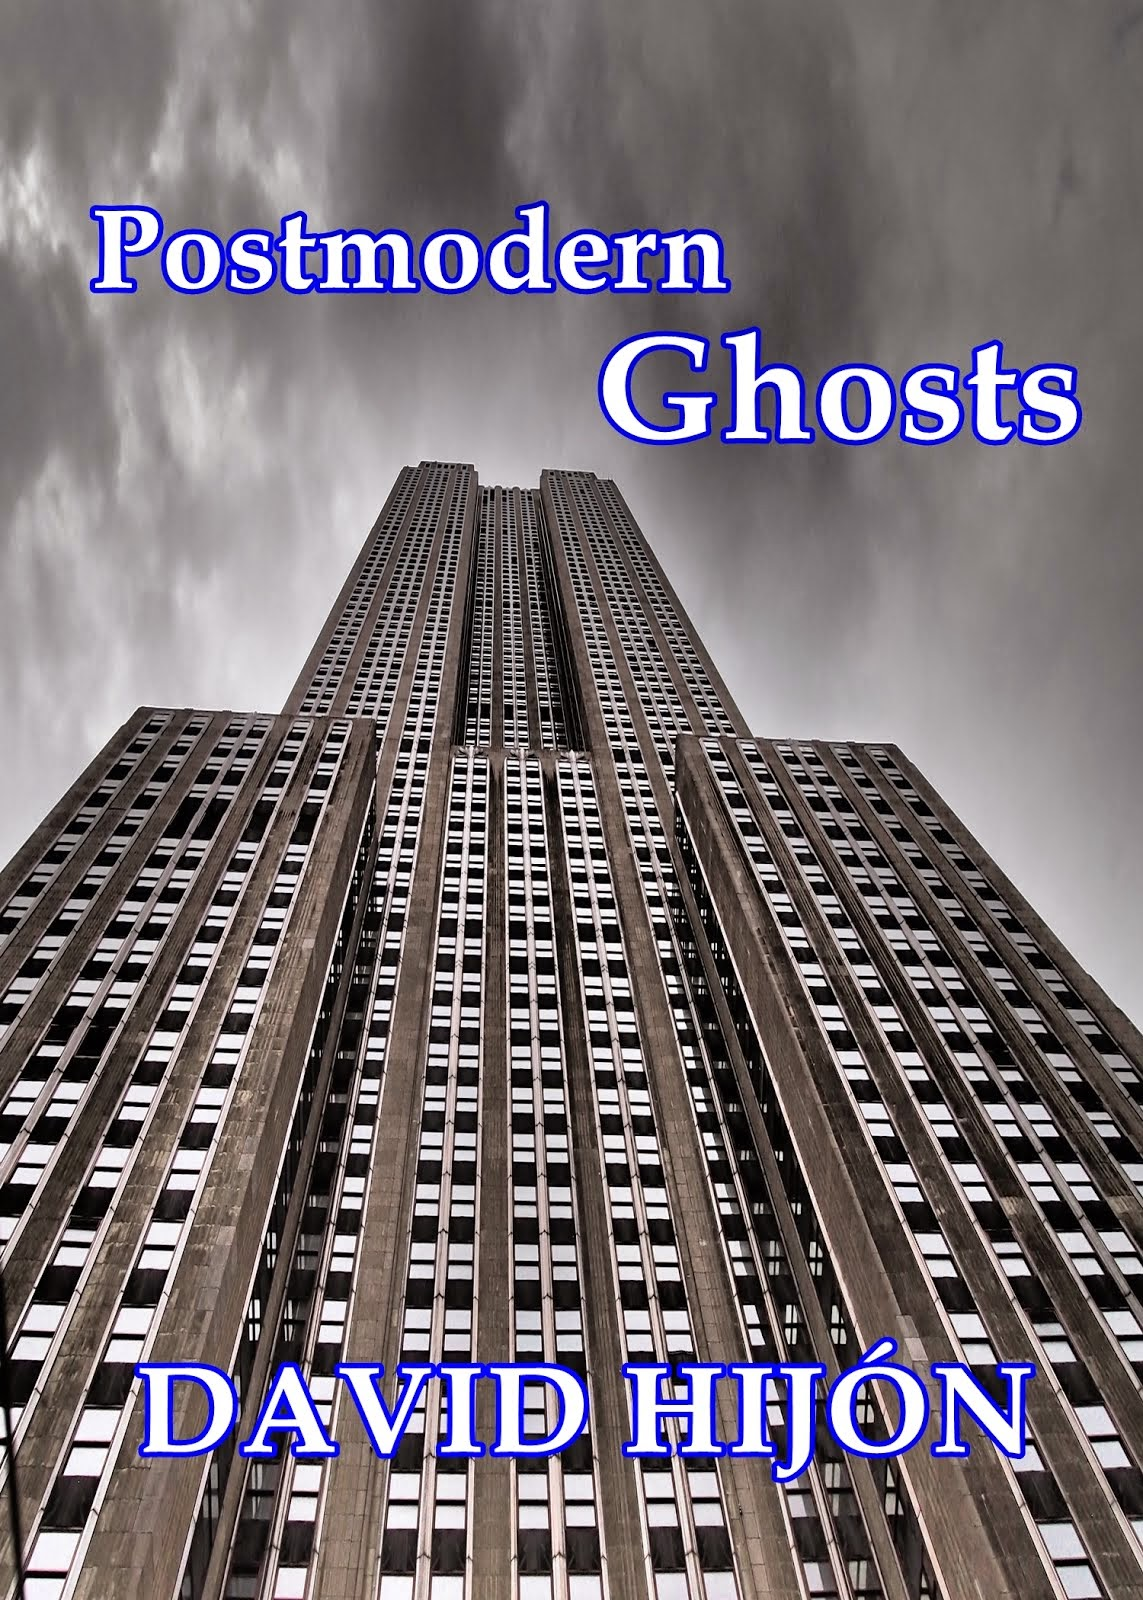 Postmodern Ghosts